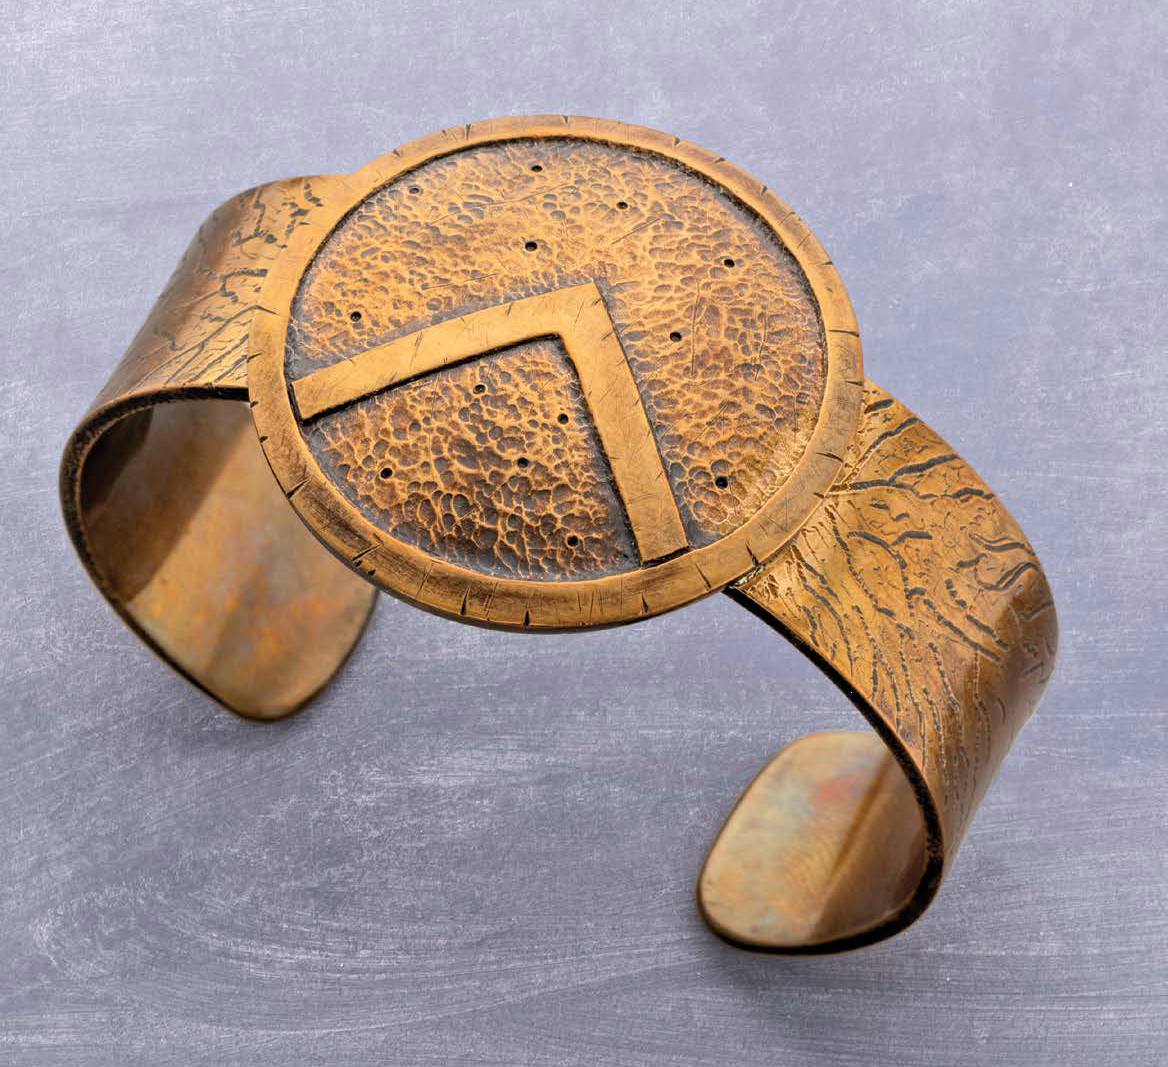 Roger Halas walks you through making this bronze Spartan Cuff, an homage to the champions of ancient Greece. Roger includes how to give the bracelet that battle-hardened surface — great, easy techniques for texturing your metal even when you don't want to suggest such fighting prowess; photo: Jim Lawson